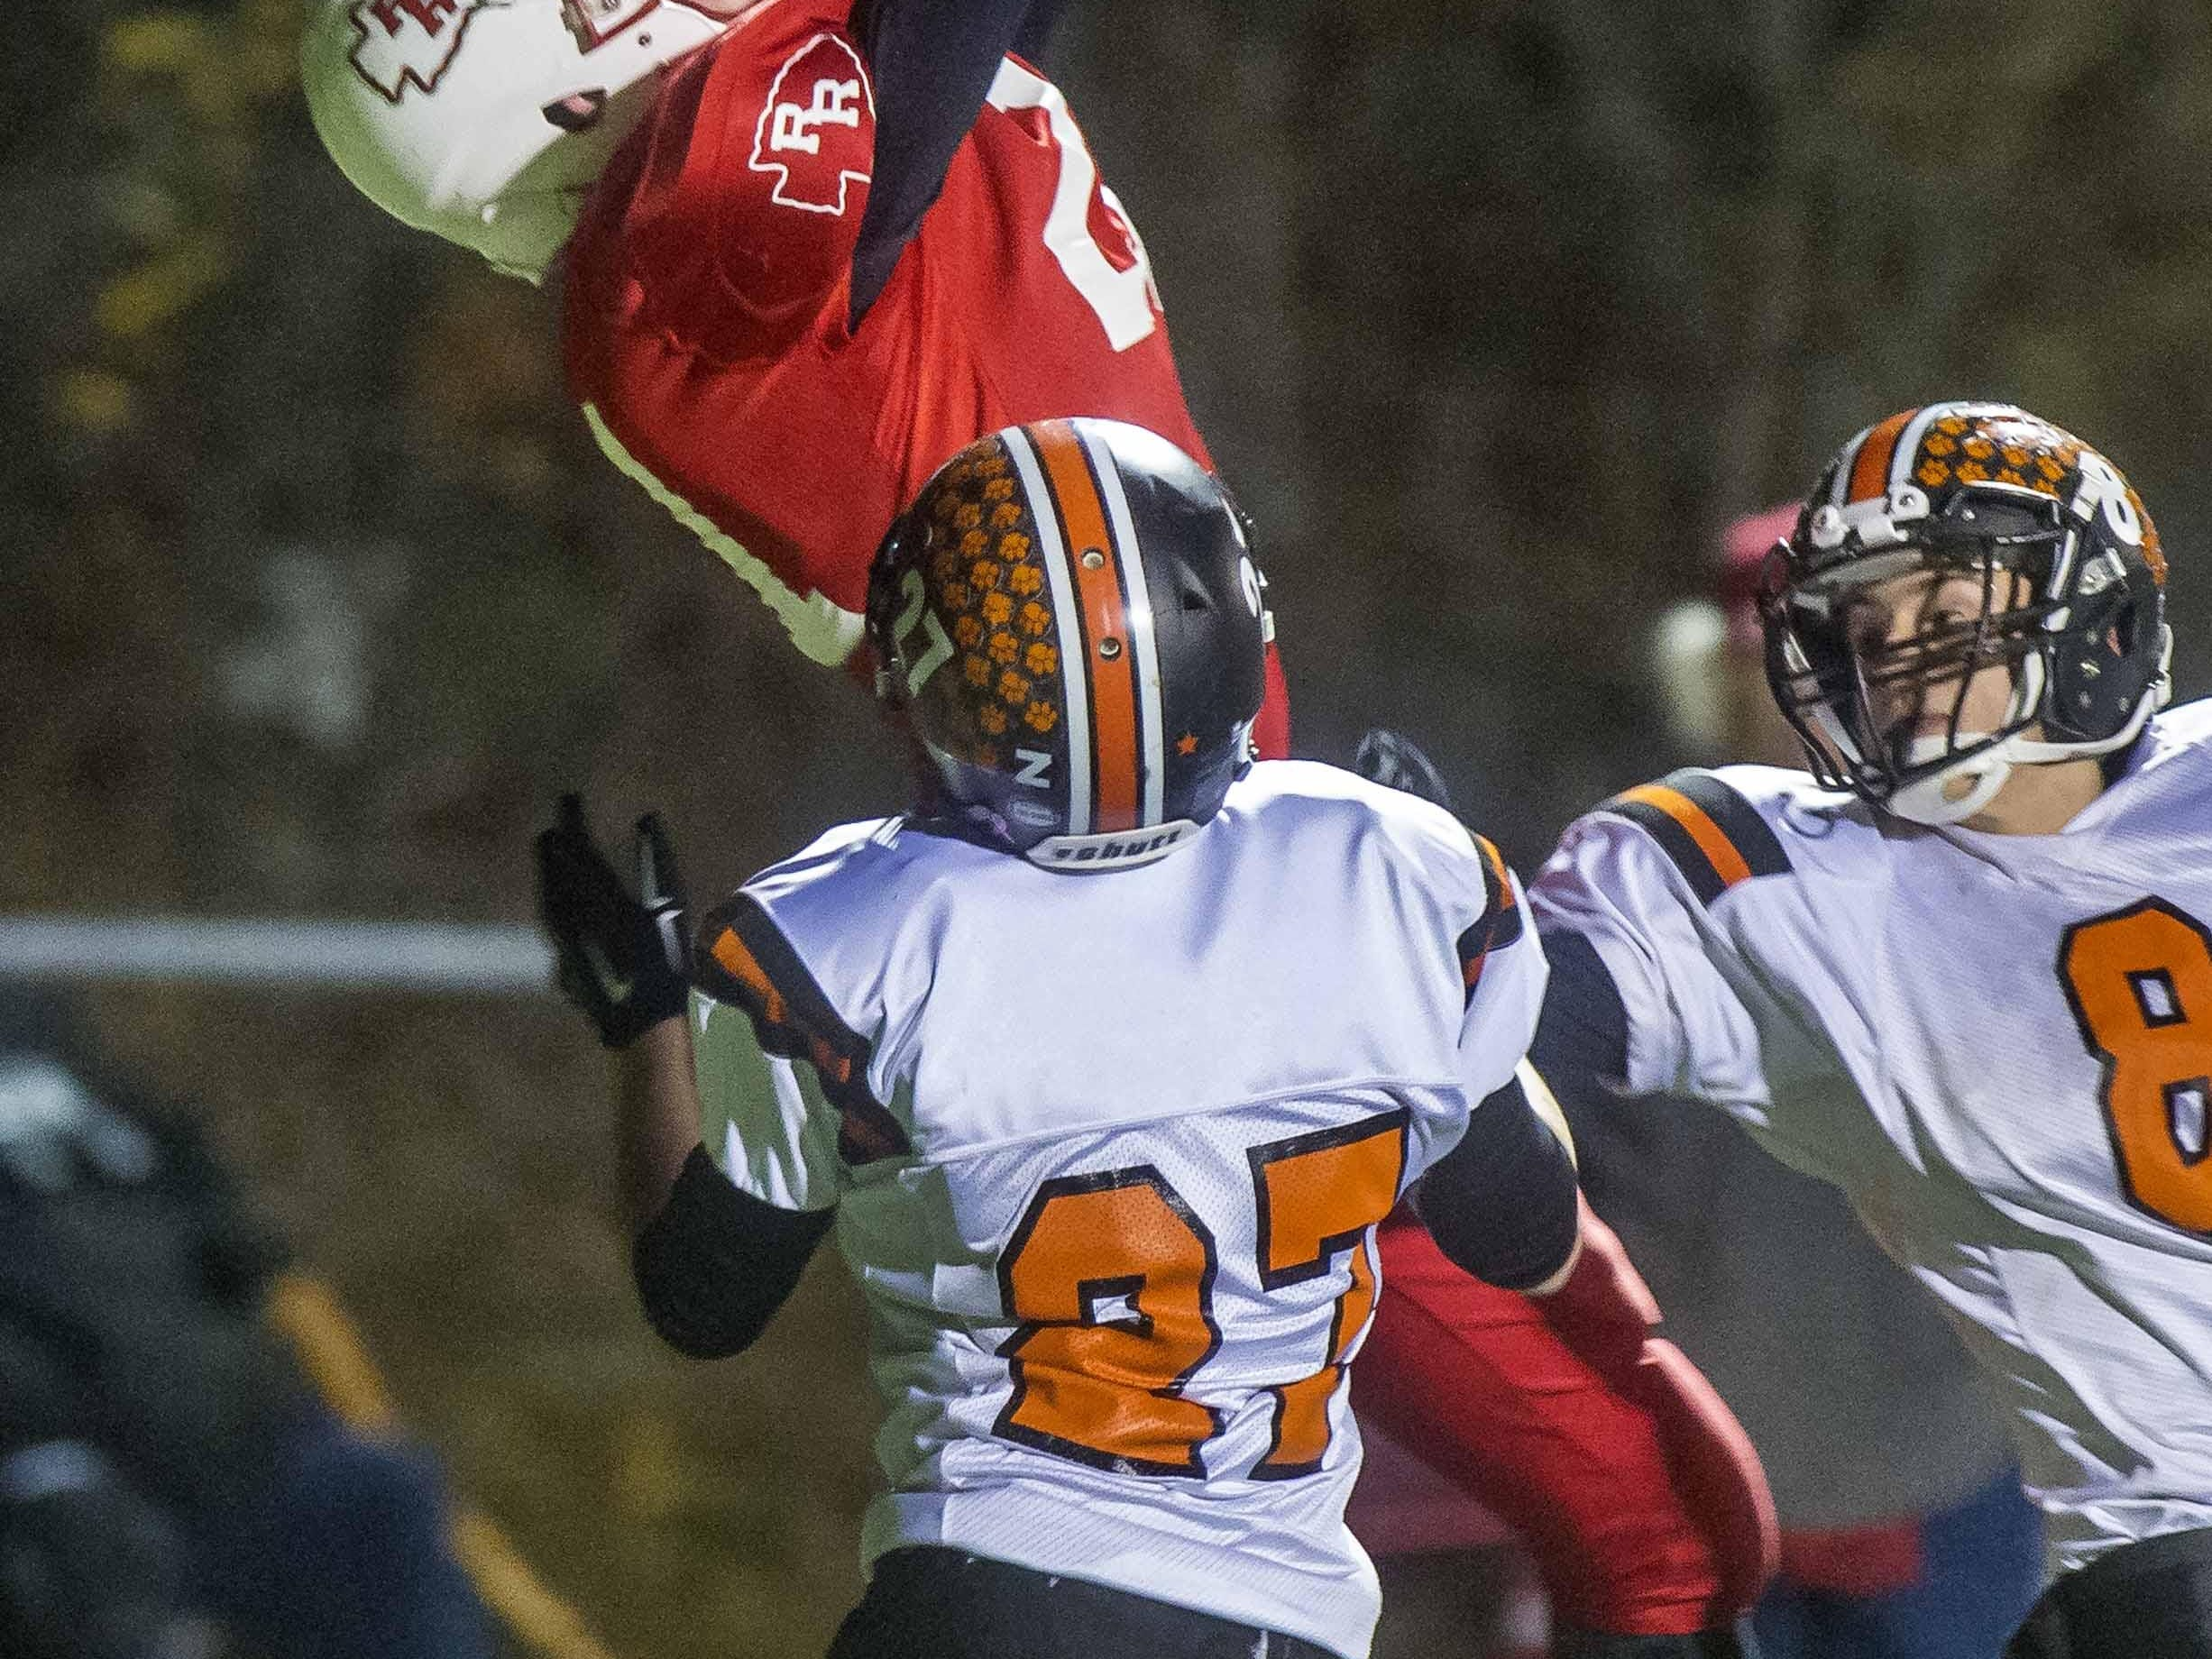 Rutland's Cam Slade, center, caches a touchdown pass over Middlebury's Jack Hounchell , left, and Chase Messner in the D1 state football championship in Rutland on Saturday, November 7, 2015.